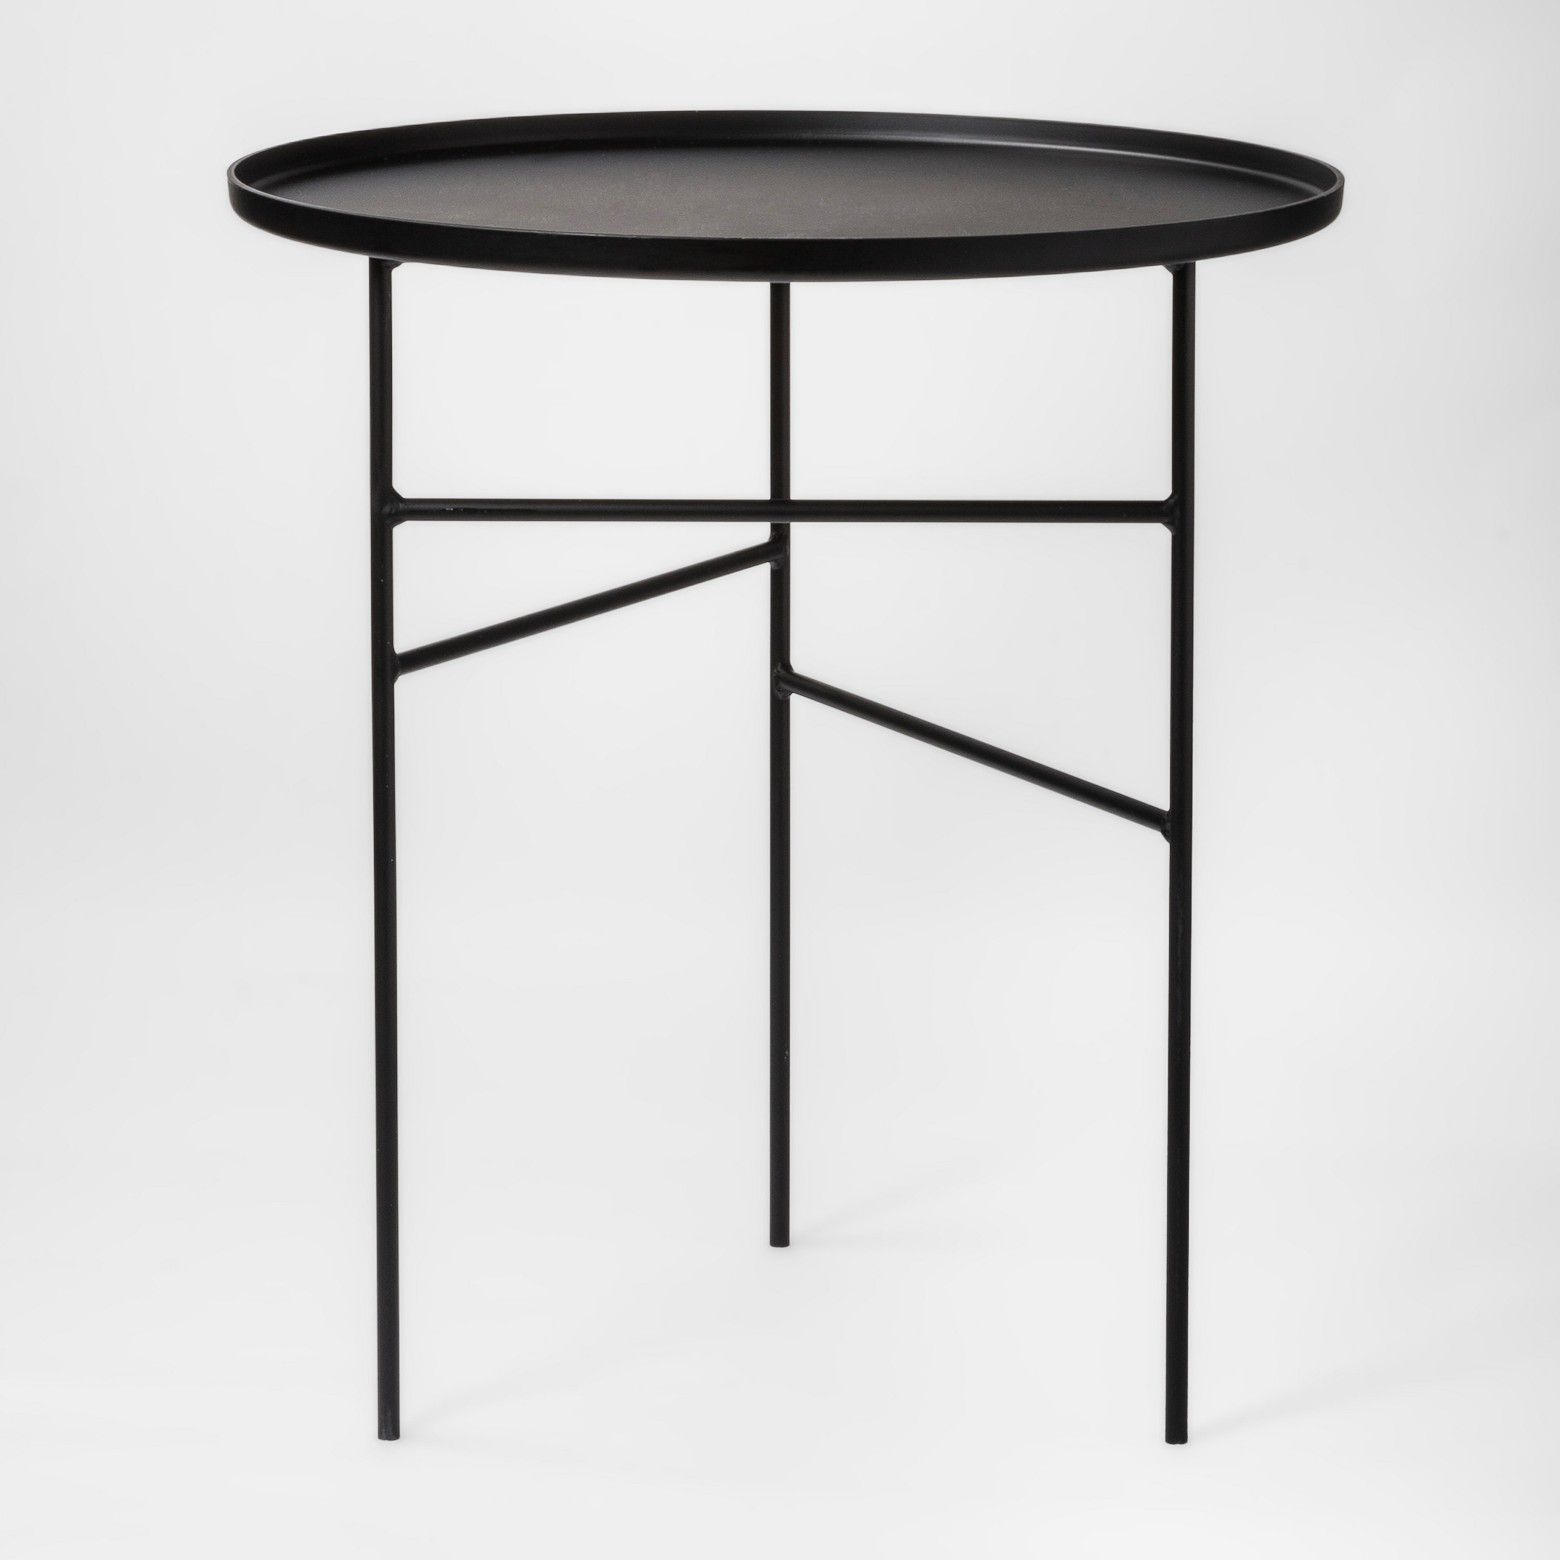 enchanting round black metal accent table outdoor small antique classic white pedestal end garden distressed patio and dining half side full size rattan drum room essentials